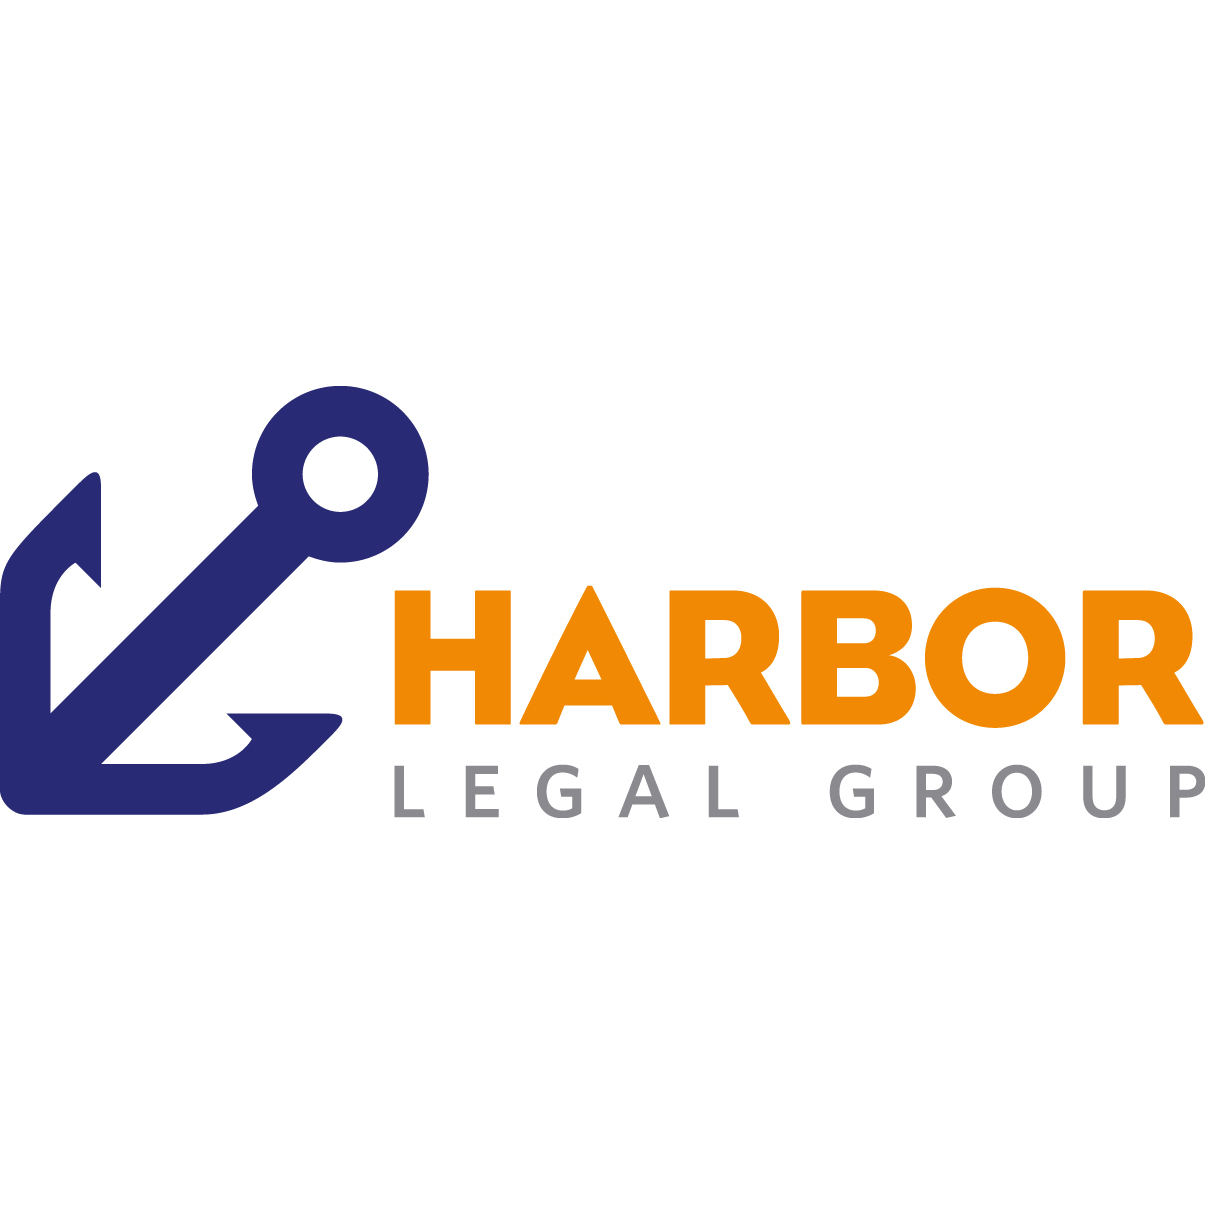 Harbor Legal Group